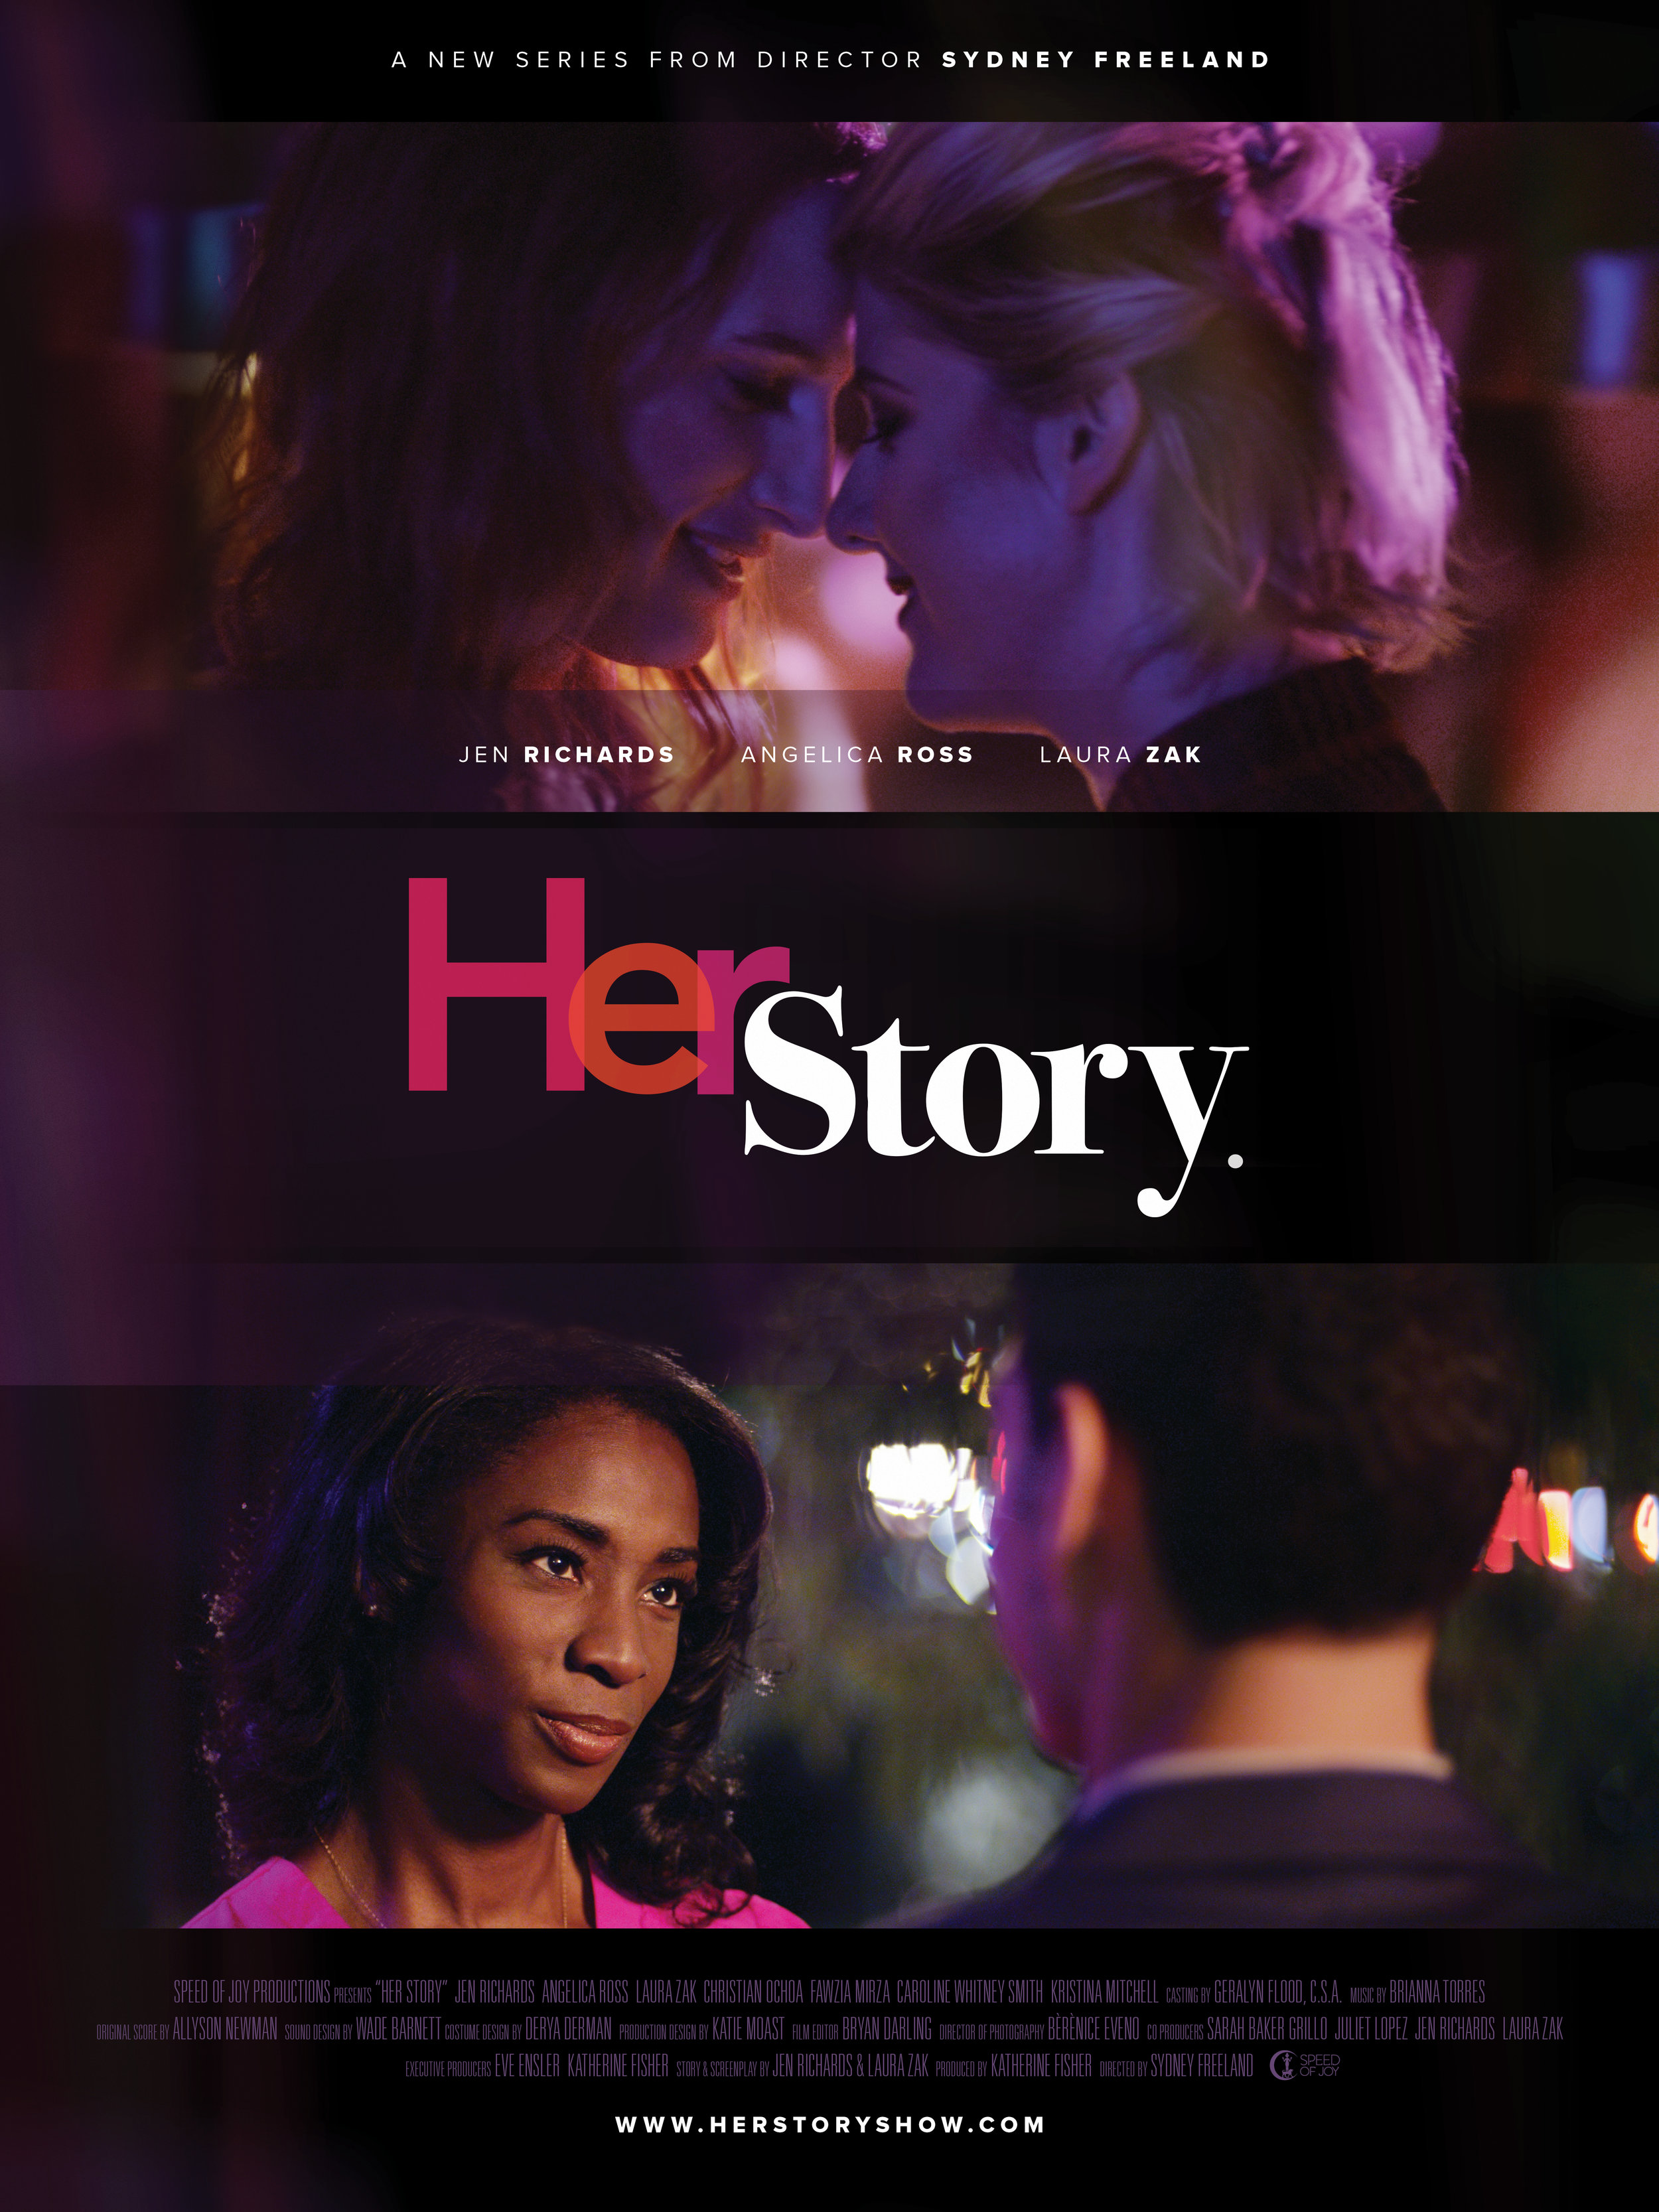 USE THIS HerStoryPoster_300ppi_Large.jpg